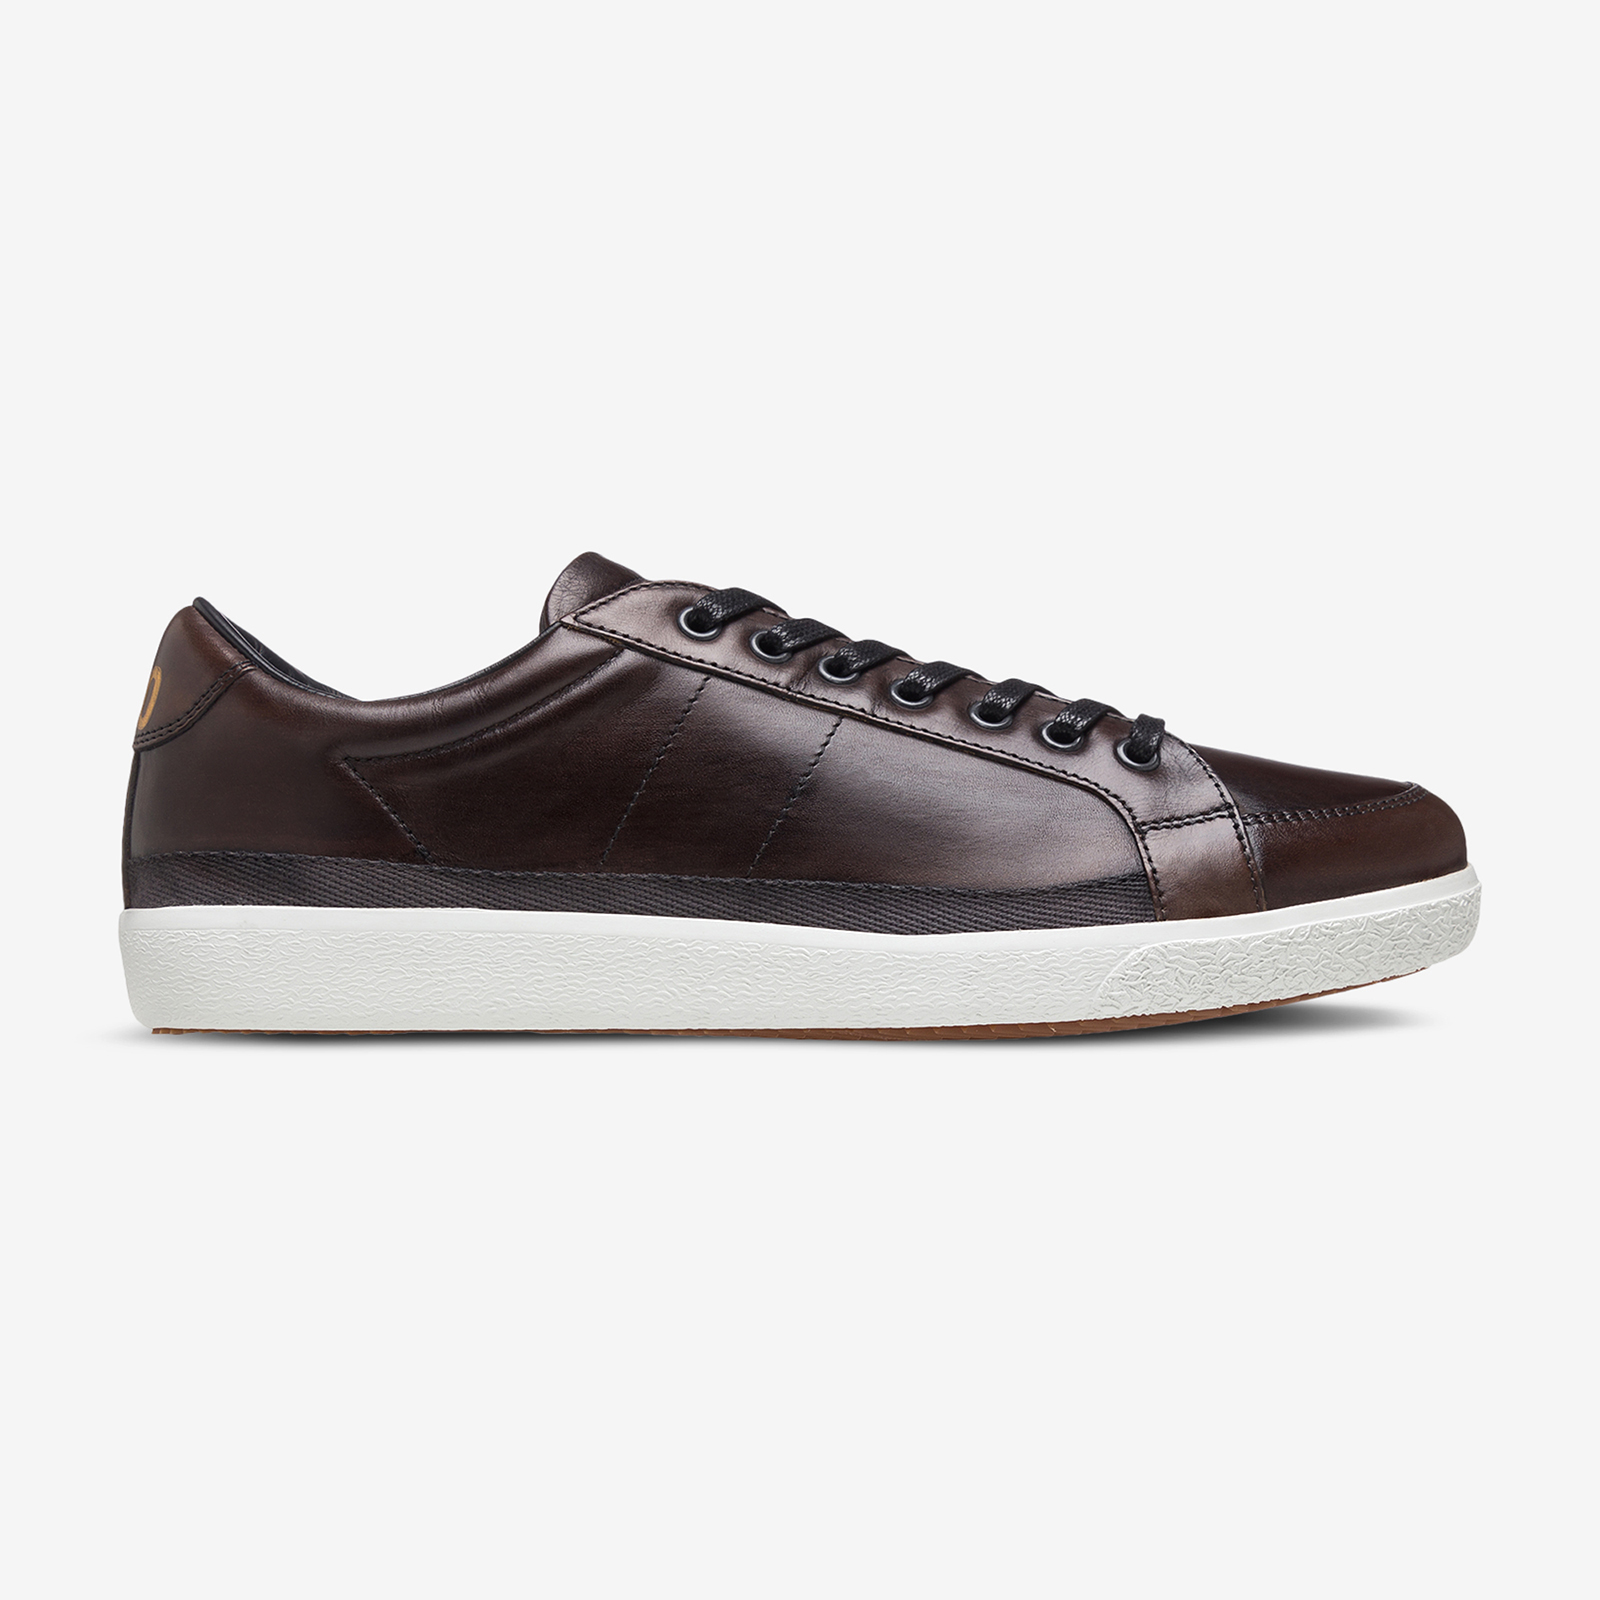 Brown sneakers product image